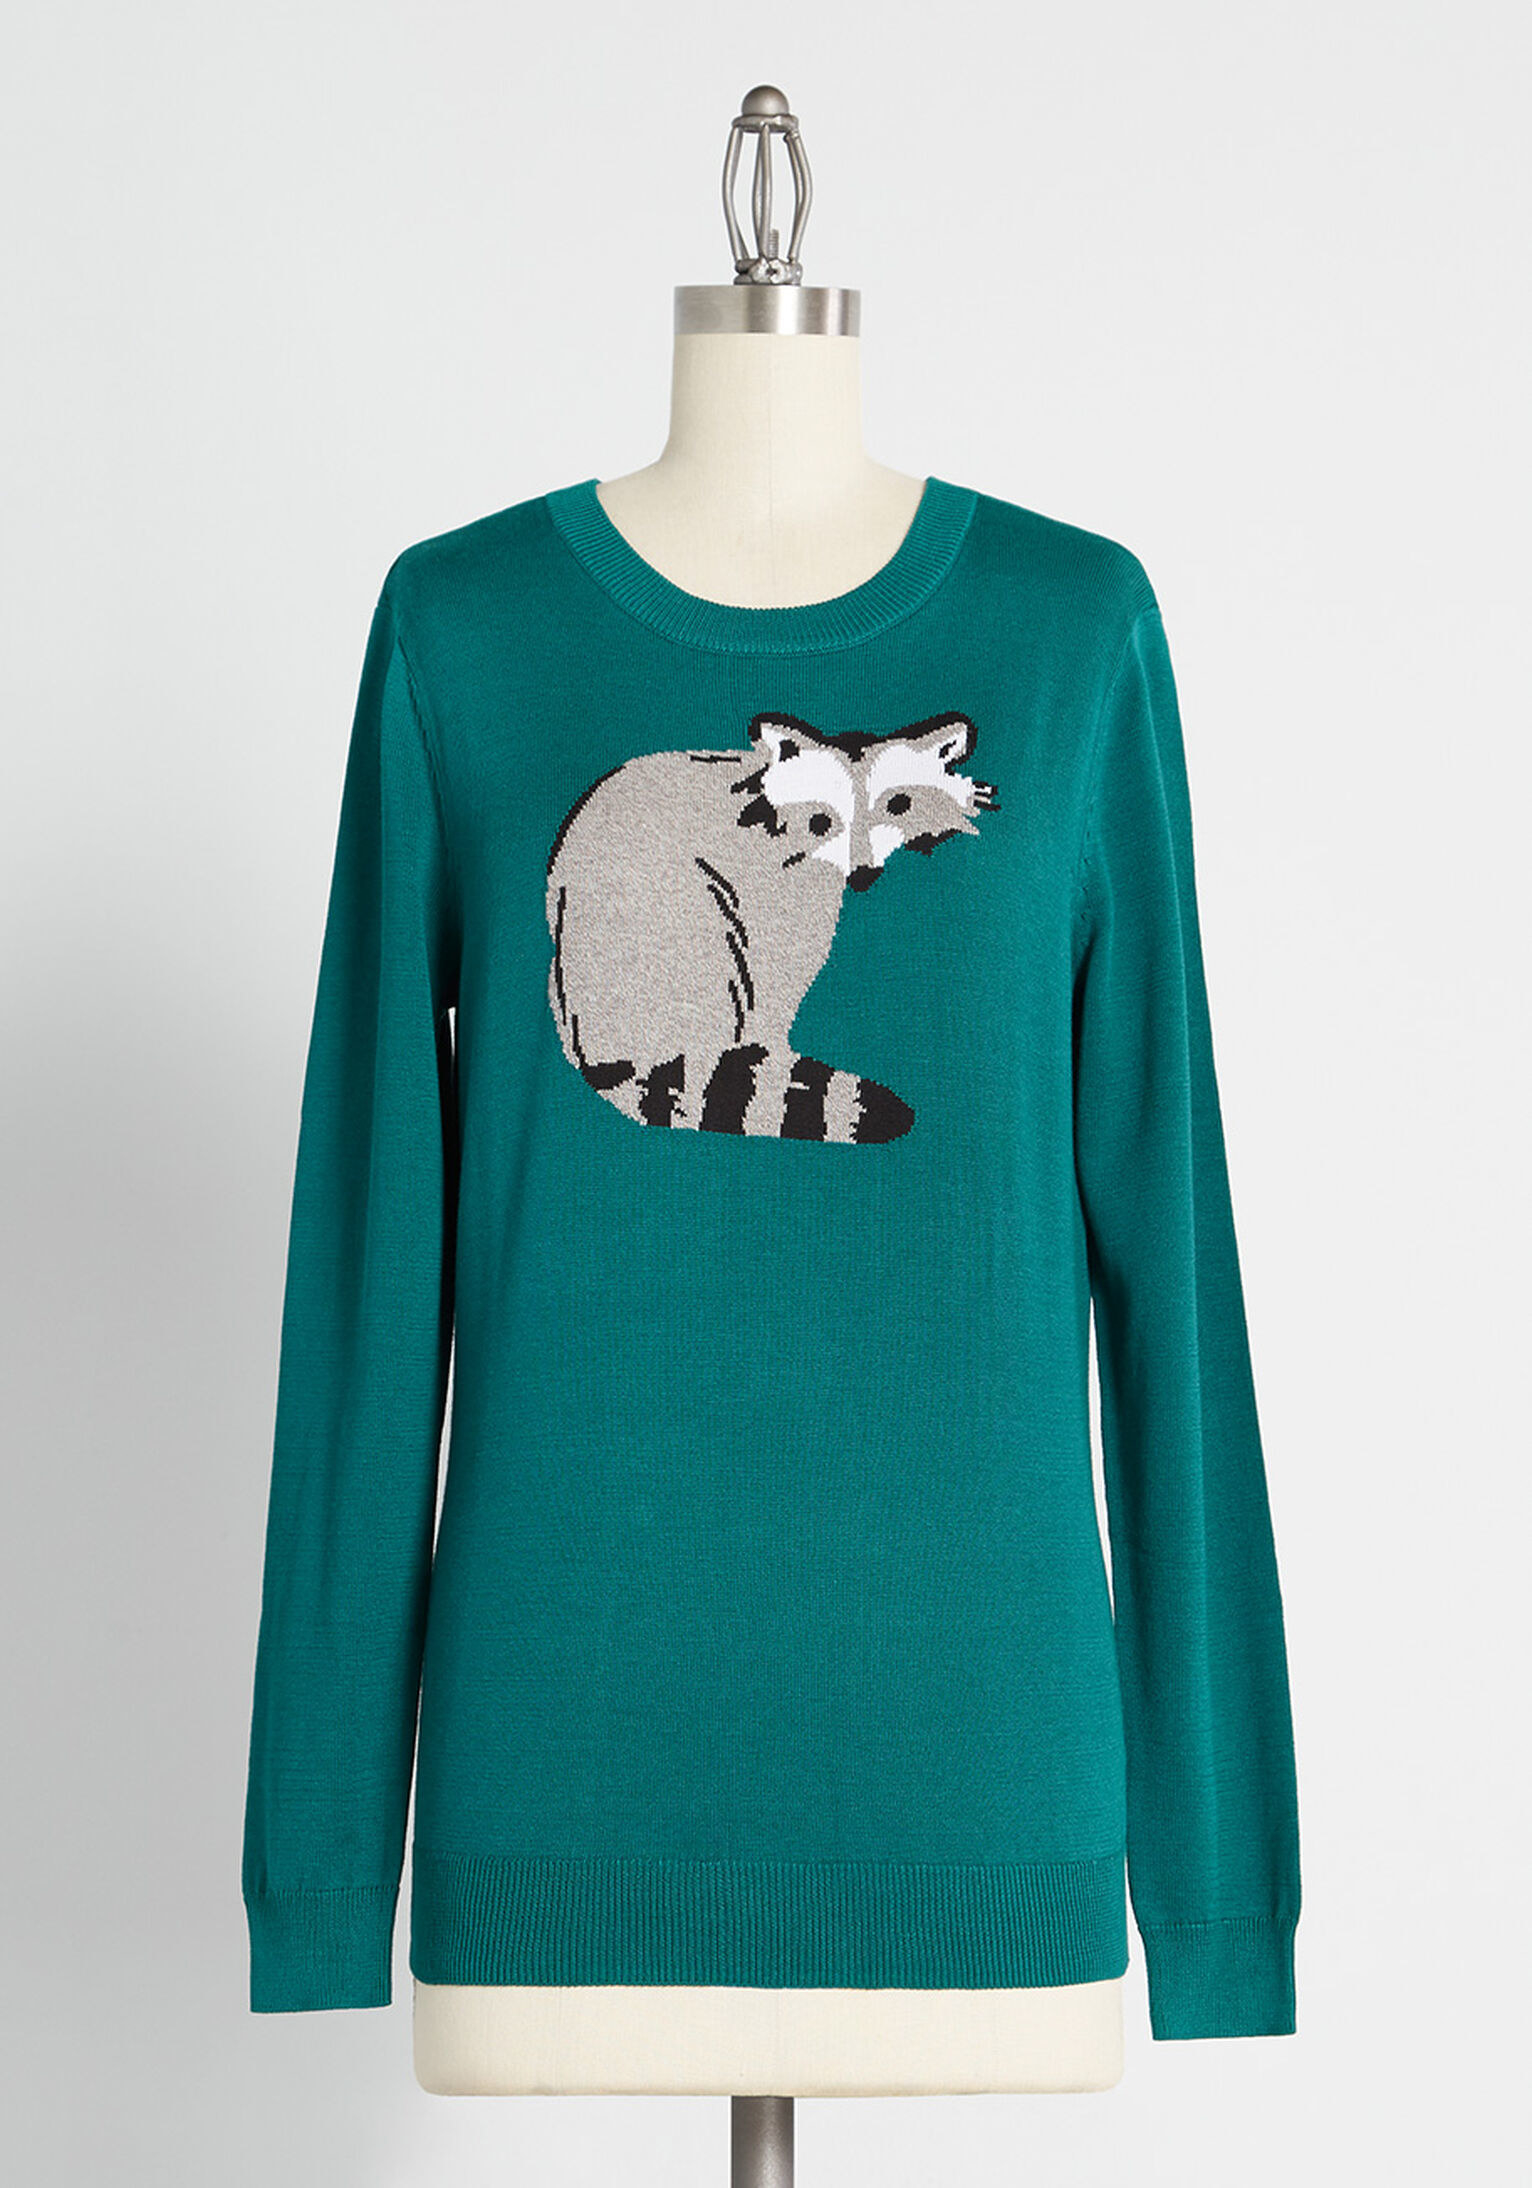 a teal sweater with a raccoon on it